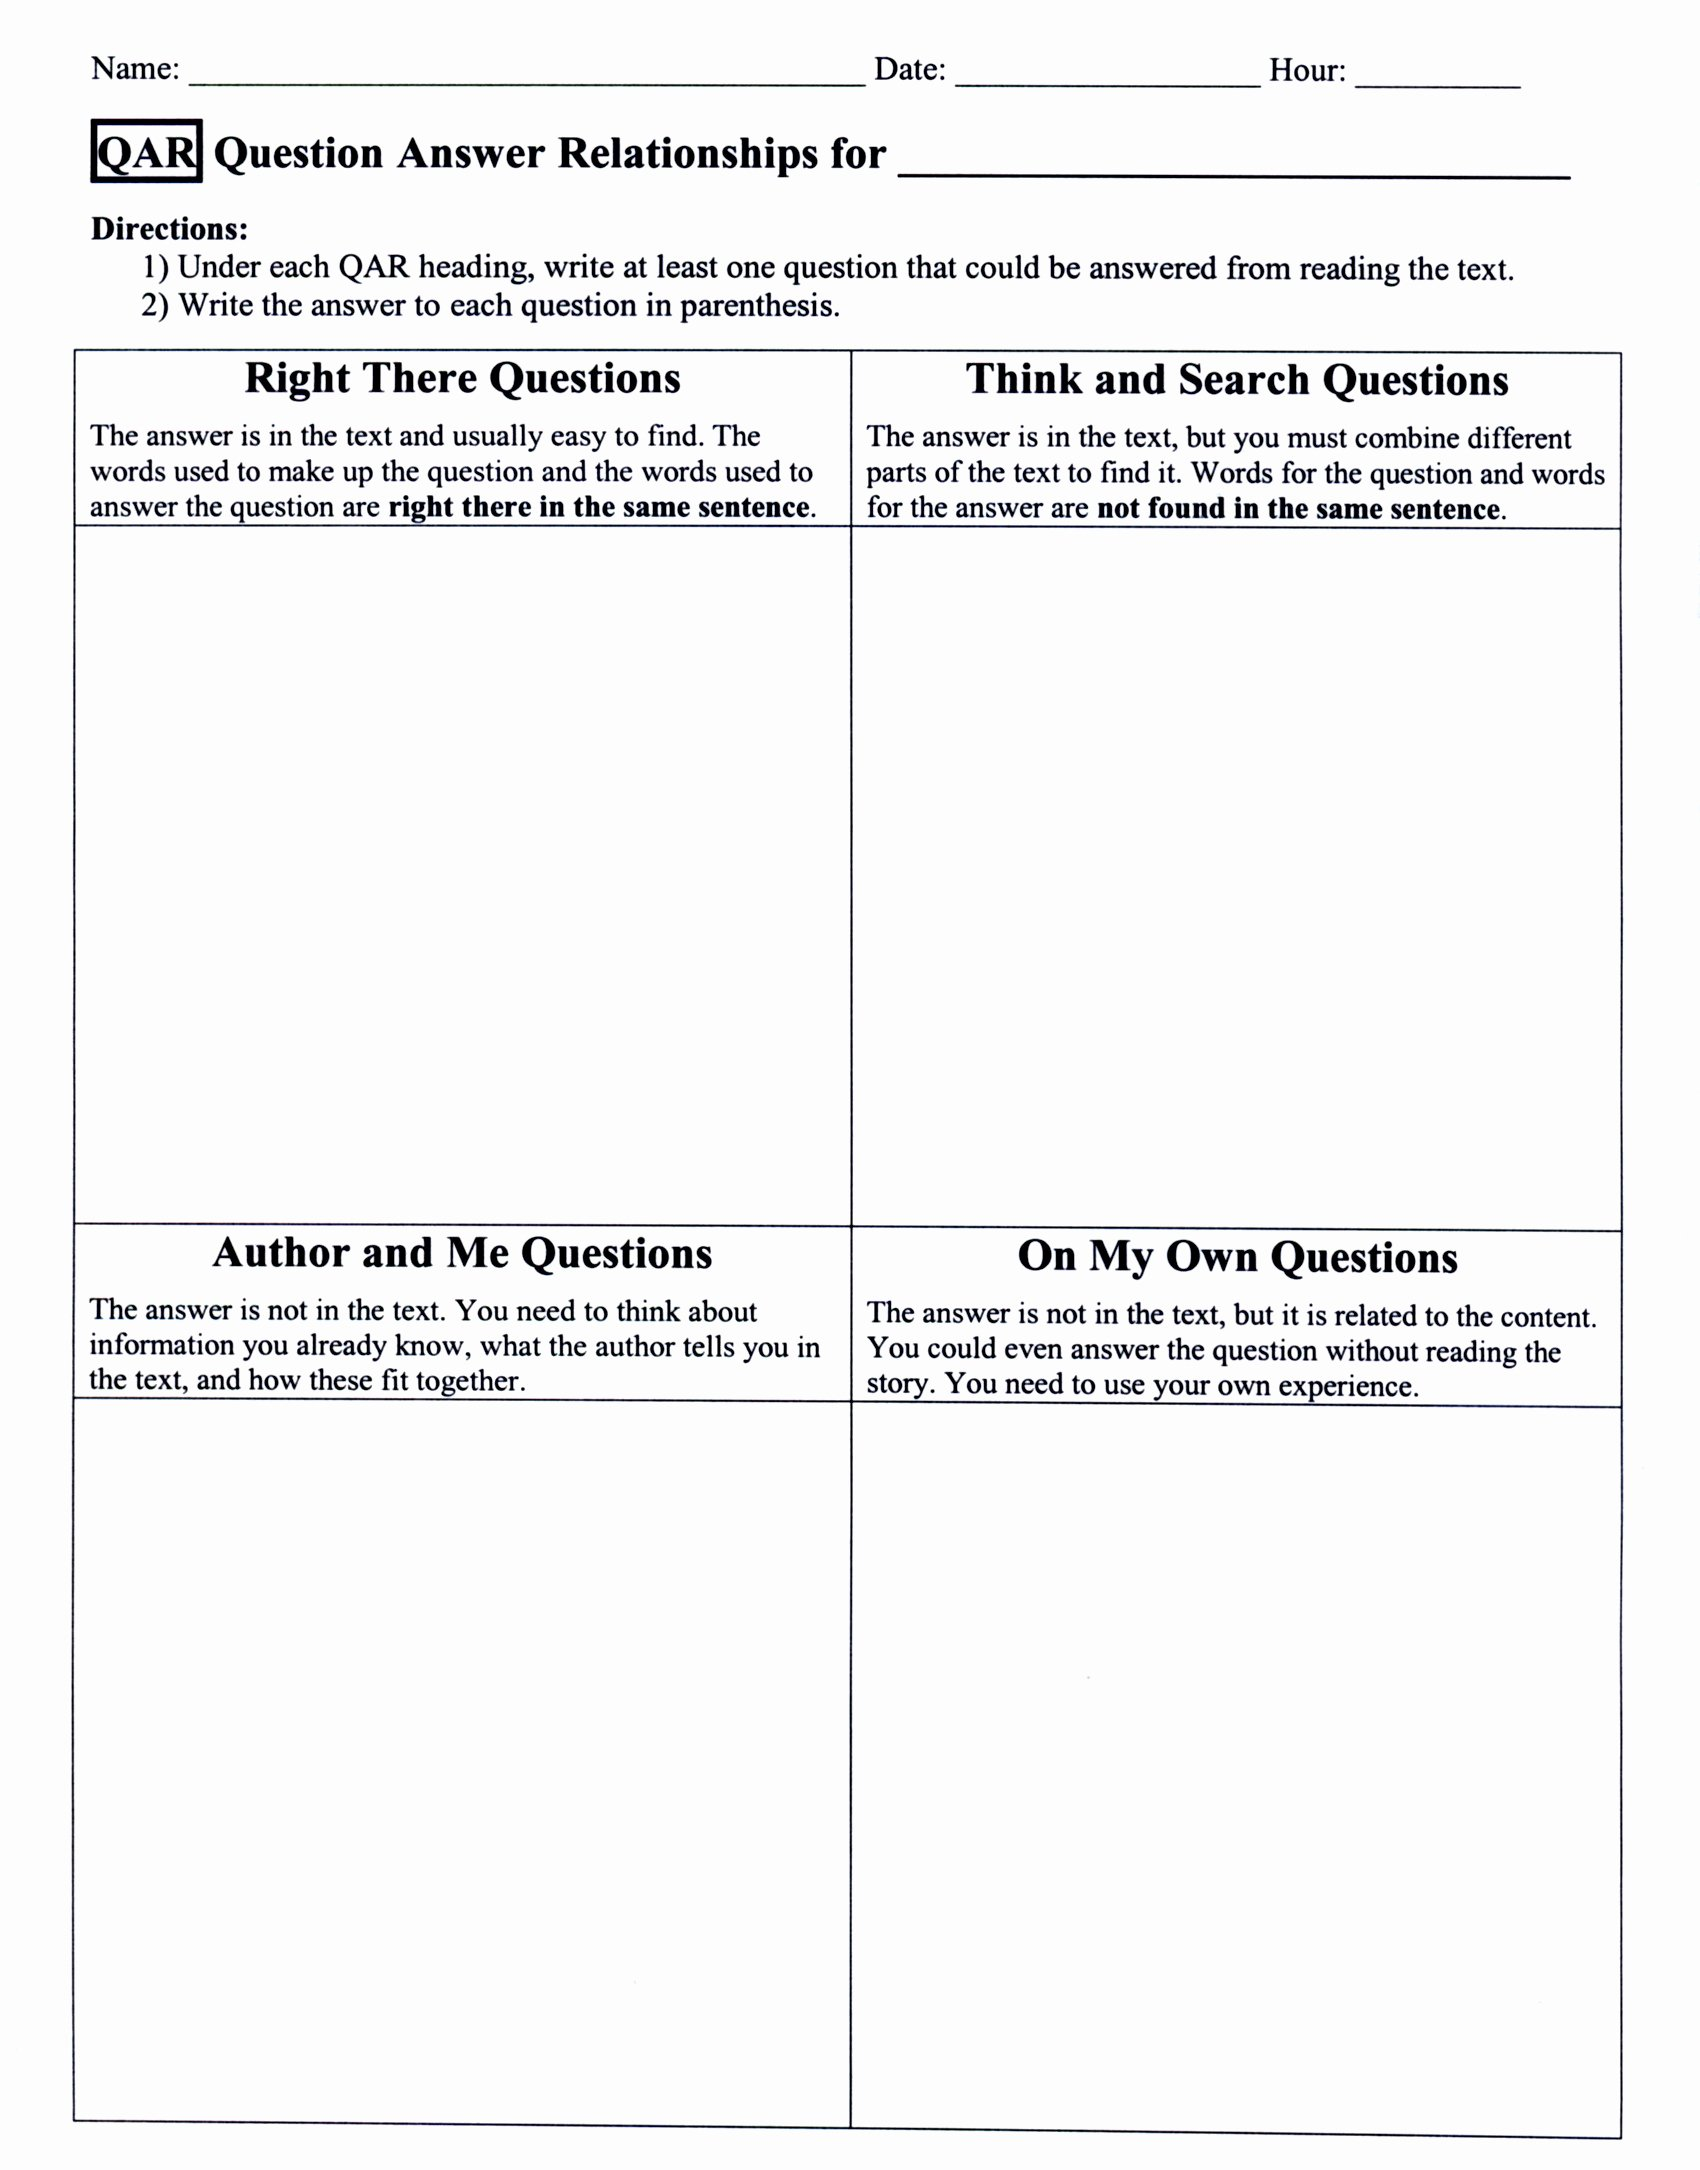 Questions and Answers Template Luxury Brittany S Esol Strategies Teaching Blog Esol Strategies